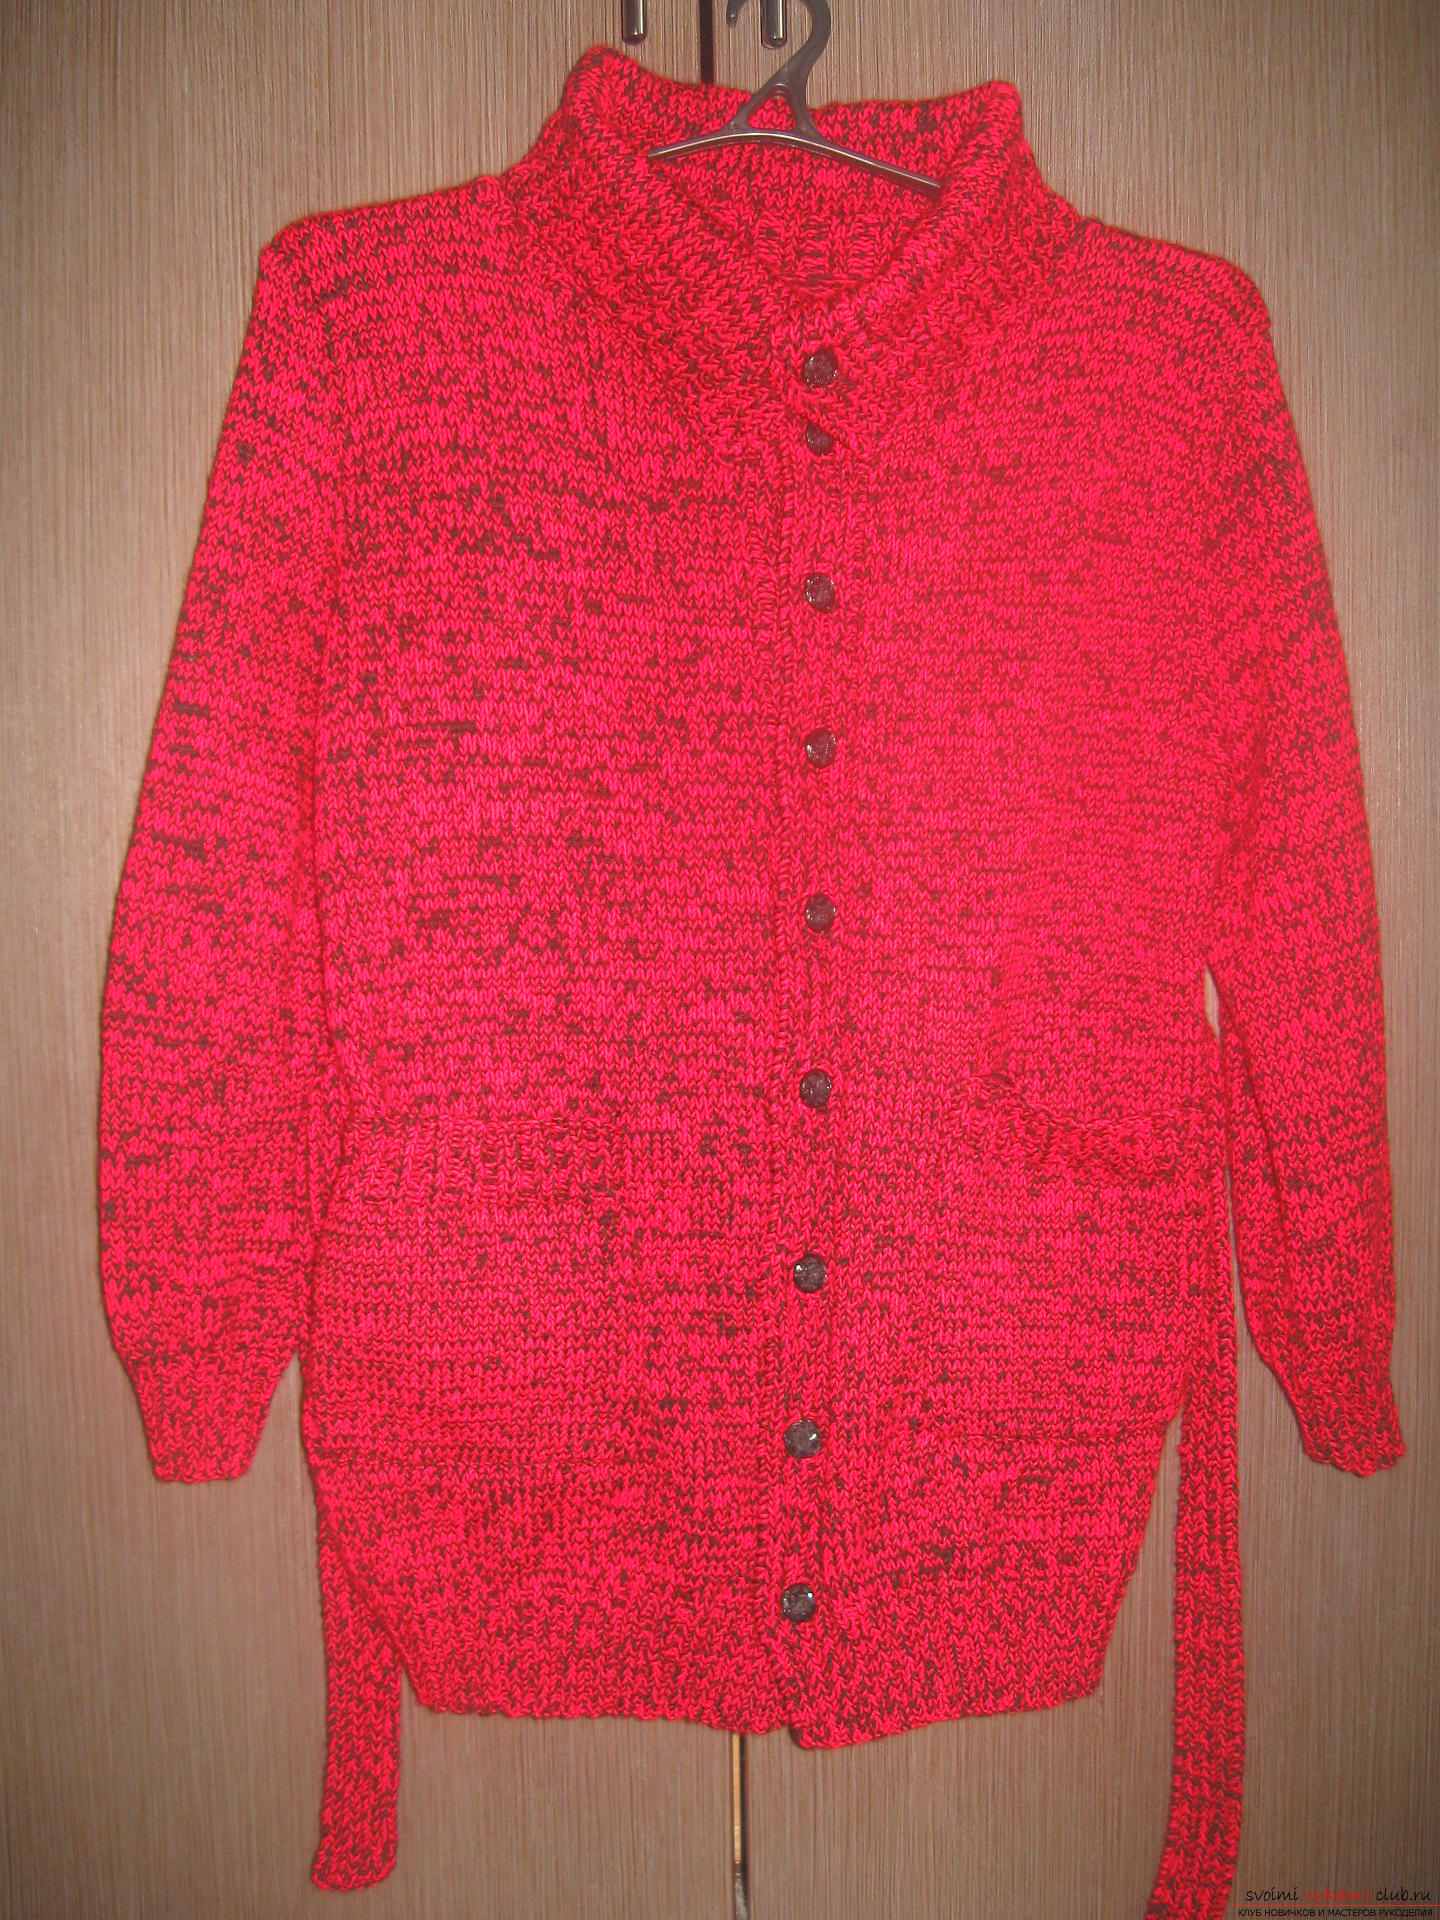 The jacket is tied with knitting needles in black and red. Photo №1